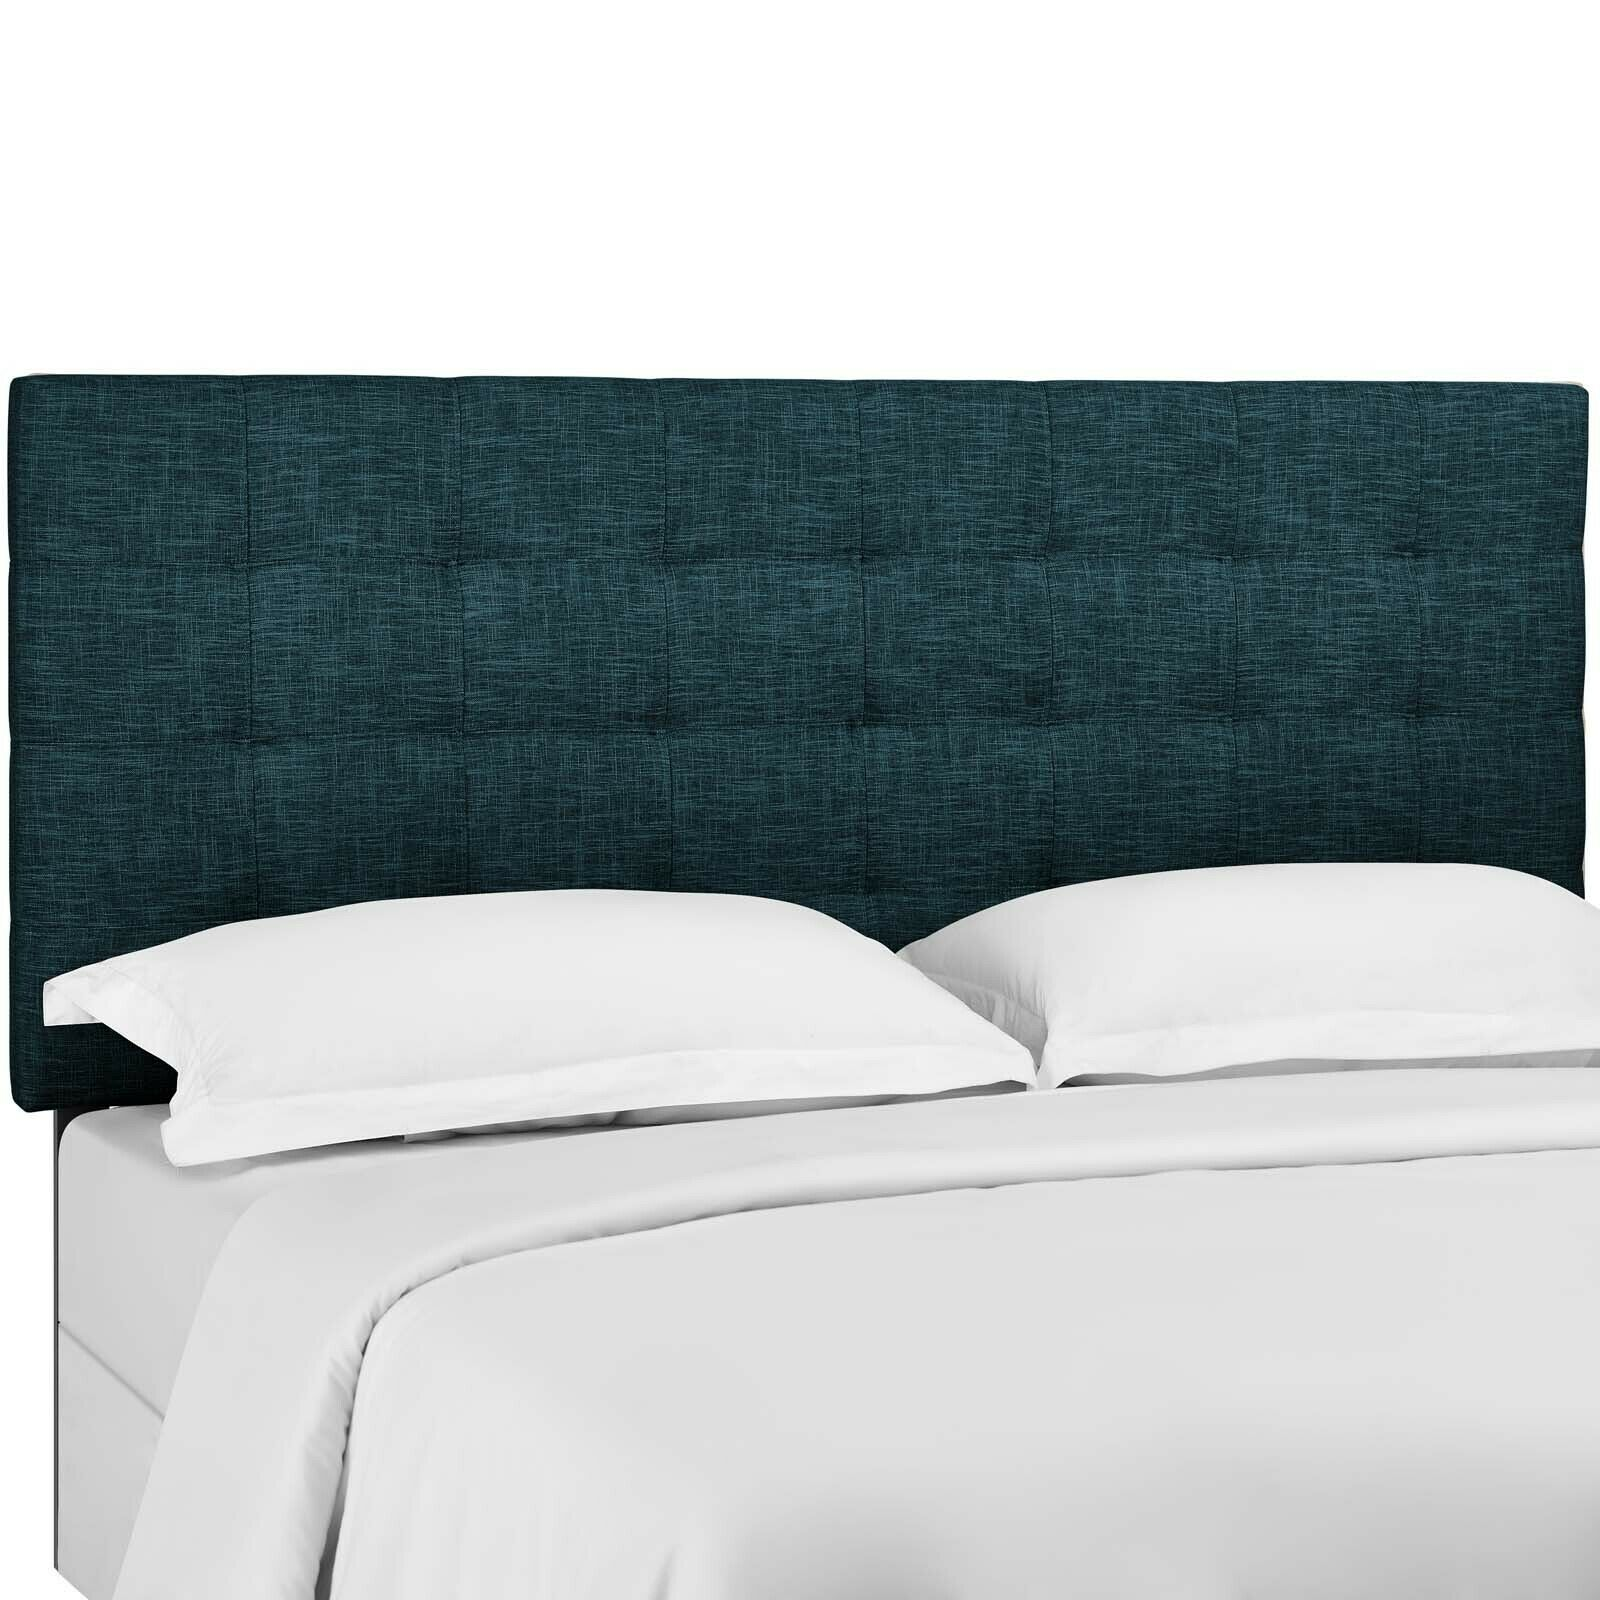 Modway Tufted Full Queen Upholstered Linen Fabric Headboard Mod 5852 Whi For Sale Online Ebay